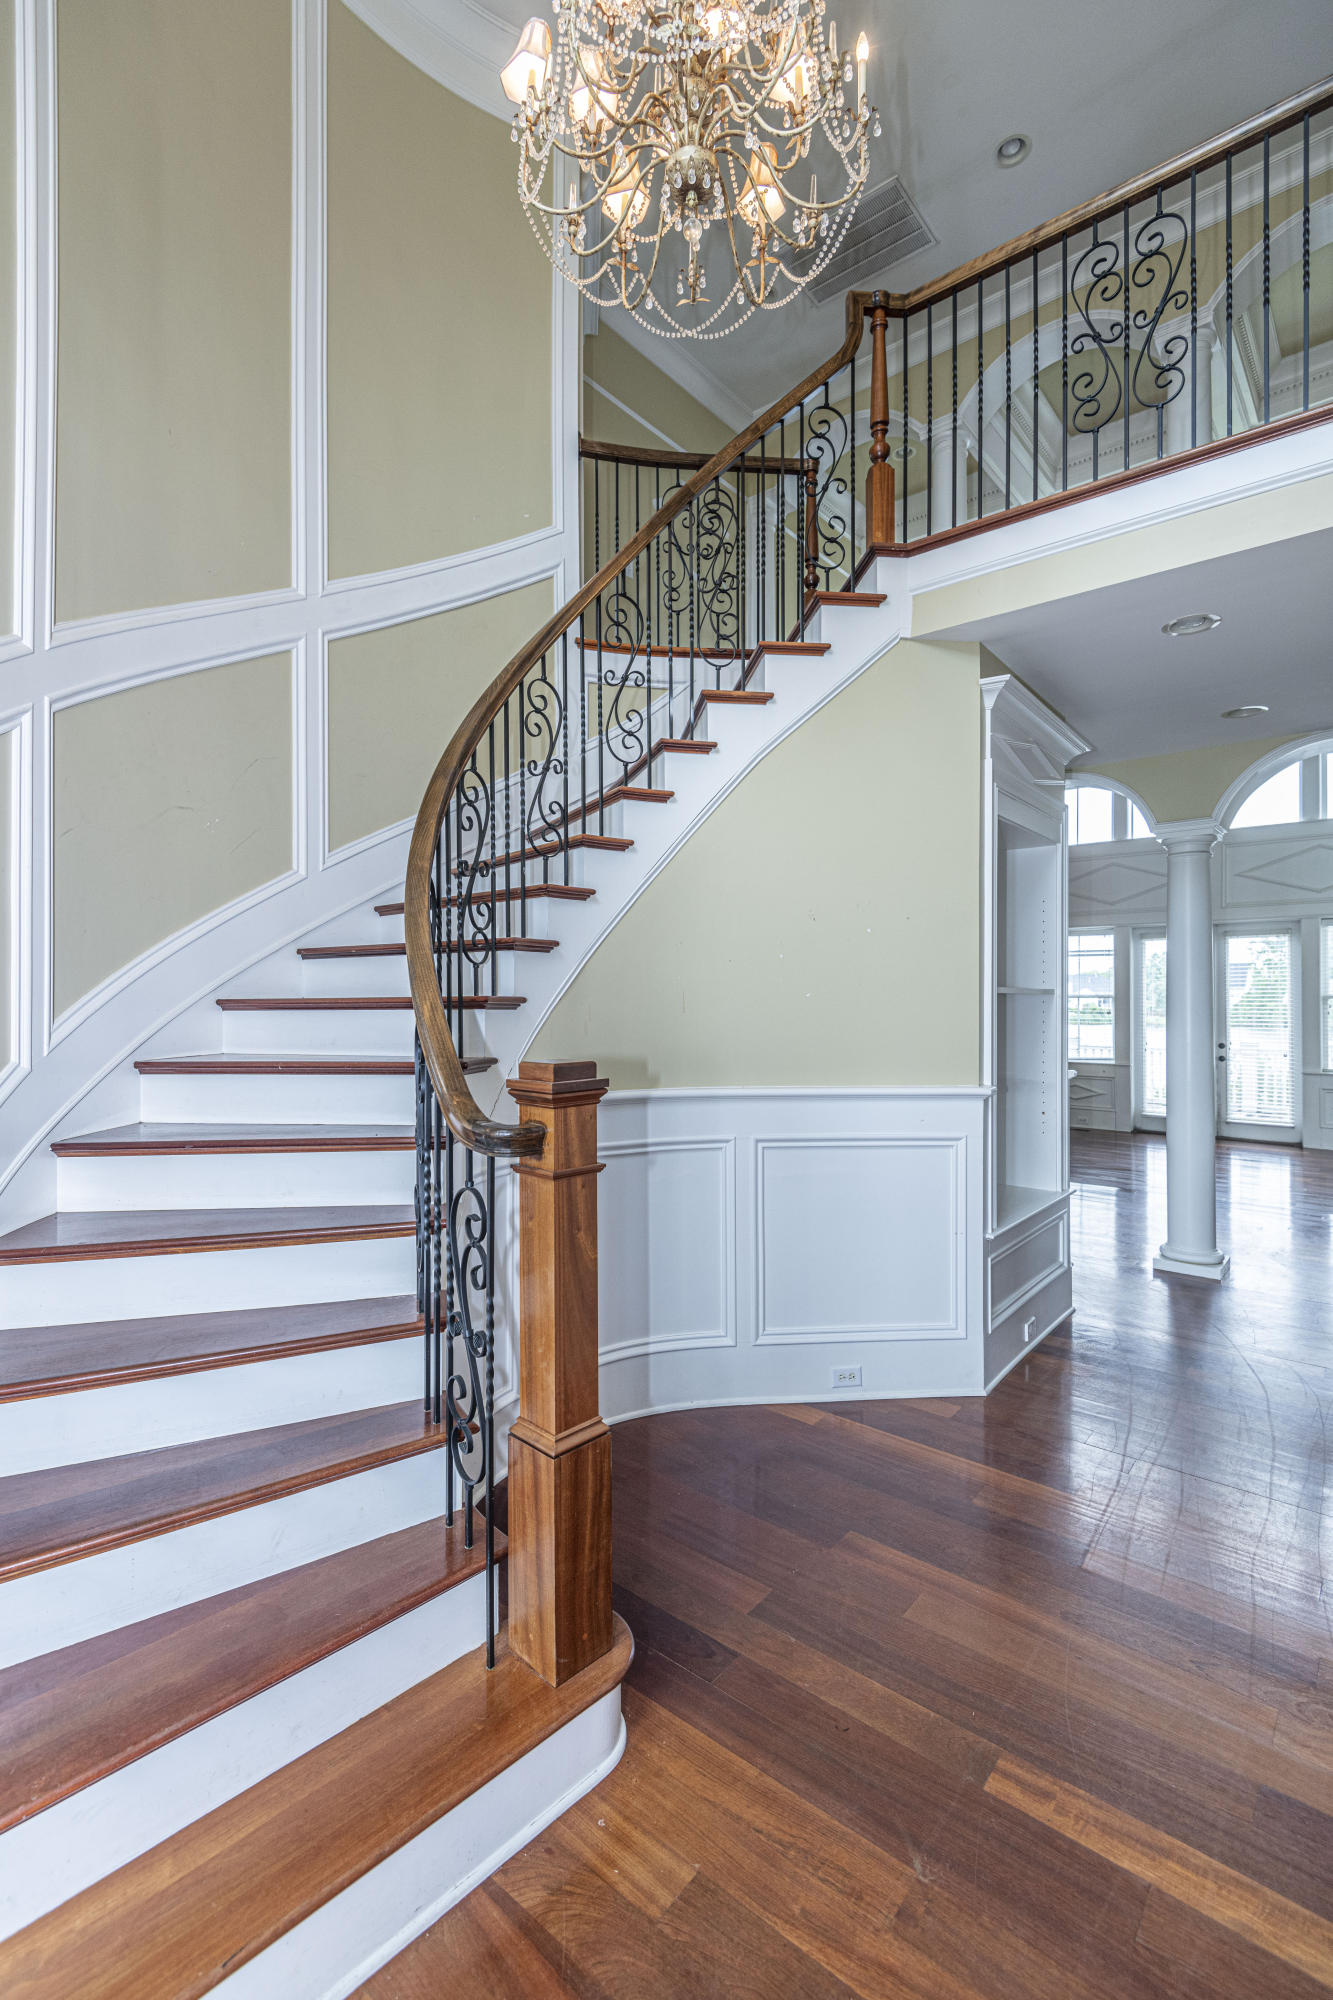 Rivertowne Country Club Homes For Sale - 1593 Rivertowne Country Club, Mount Pleasant, SC - 5